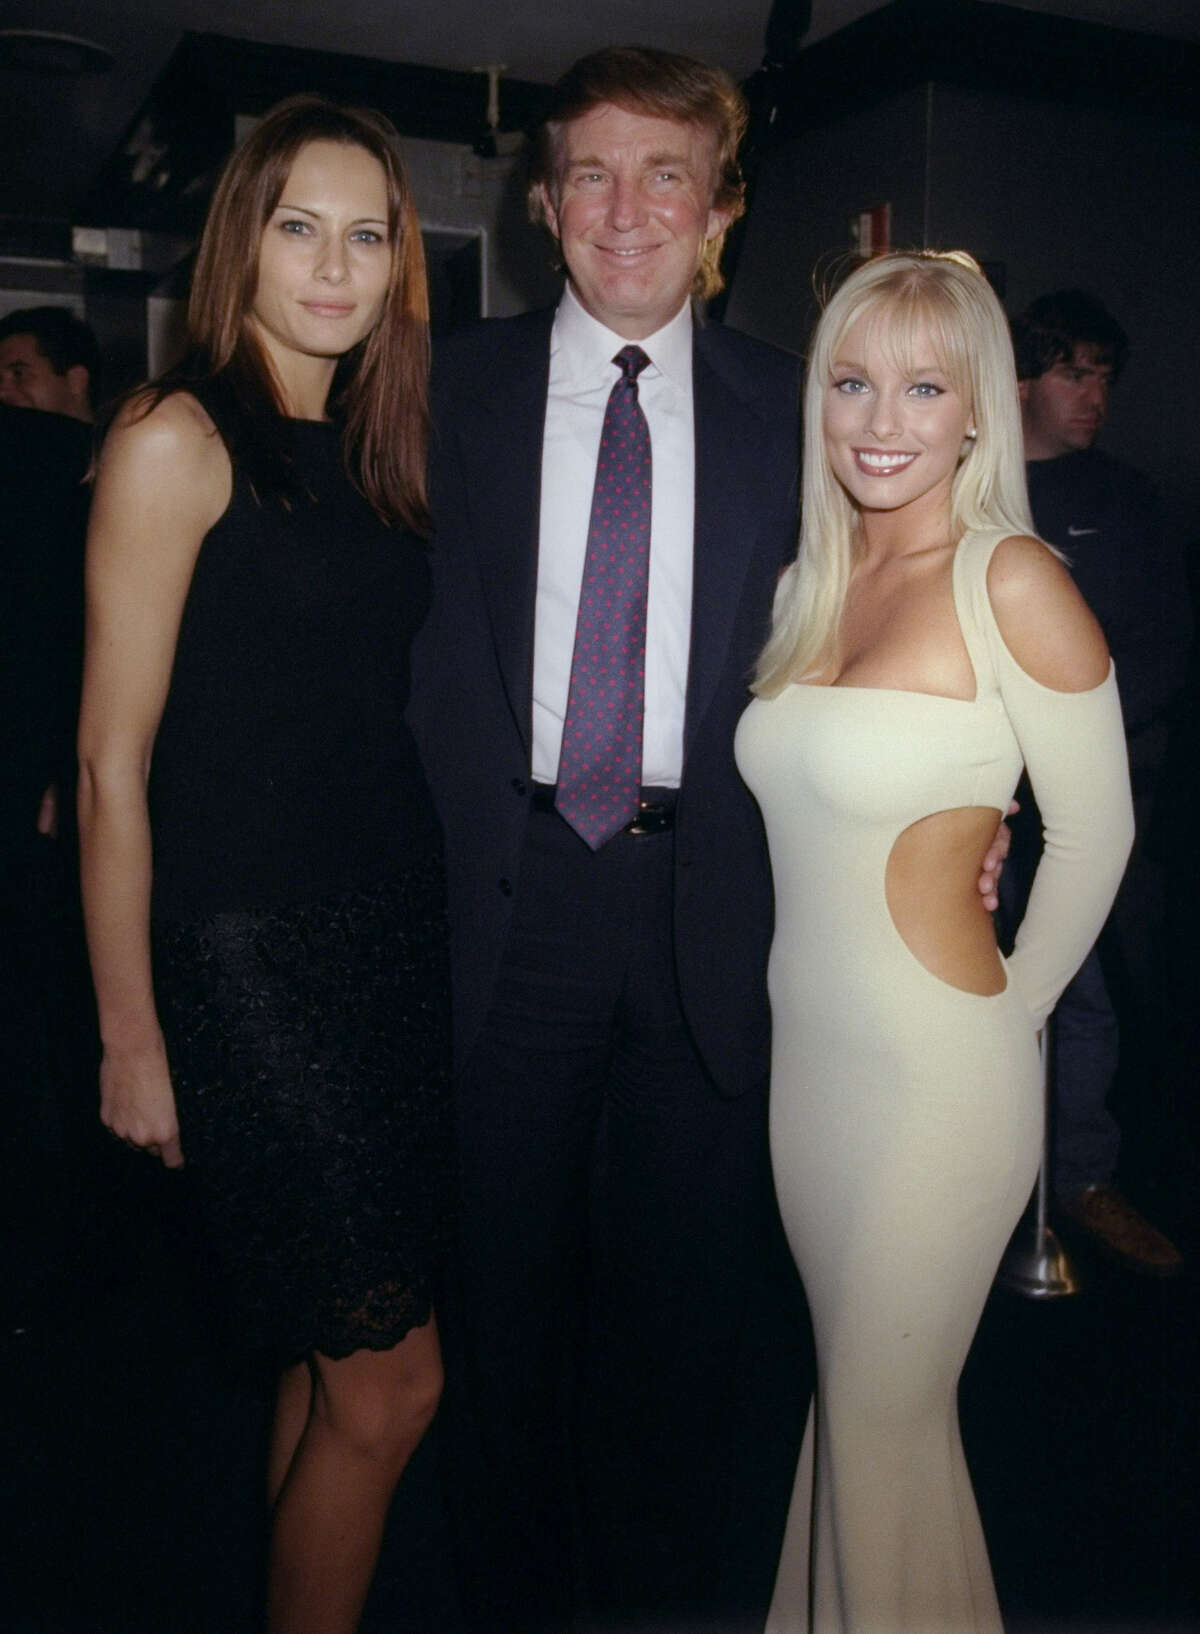 Donald Trump is flanked by his date, model Melania Knausss, and Jaime Bergman at a party celebrating Playboy magazine's 45th anniversary at the Life Club.